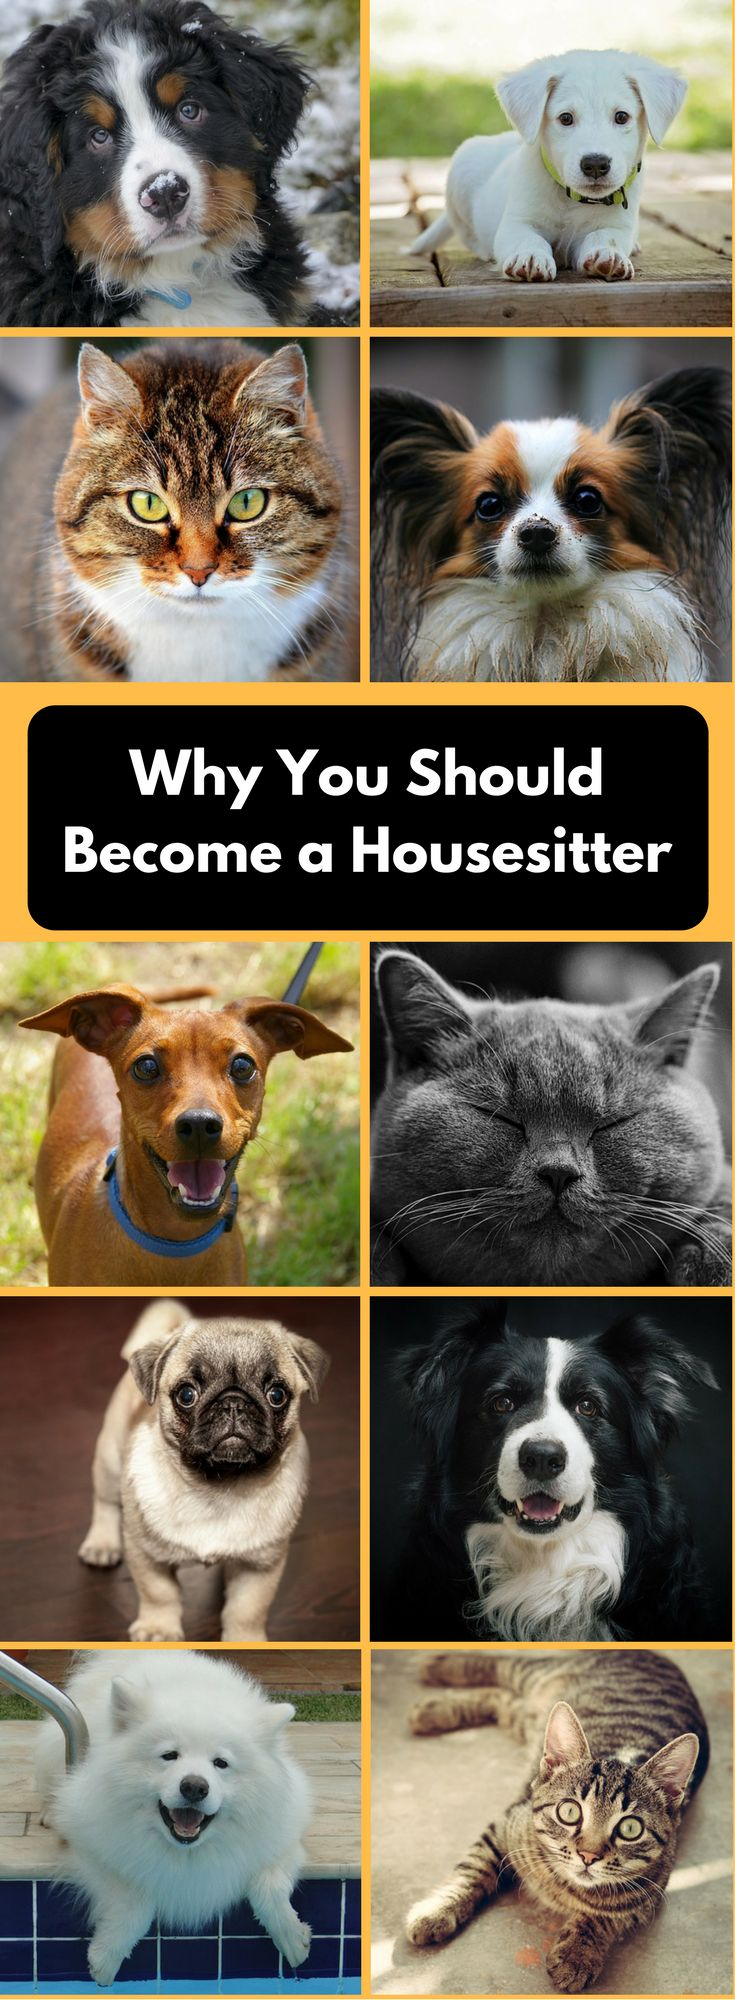 Housesitting | Become a housesitter | House sitters | House sitting while traveling | Pet sitters | Pet sitting